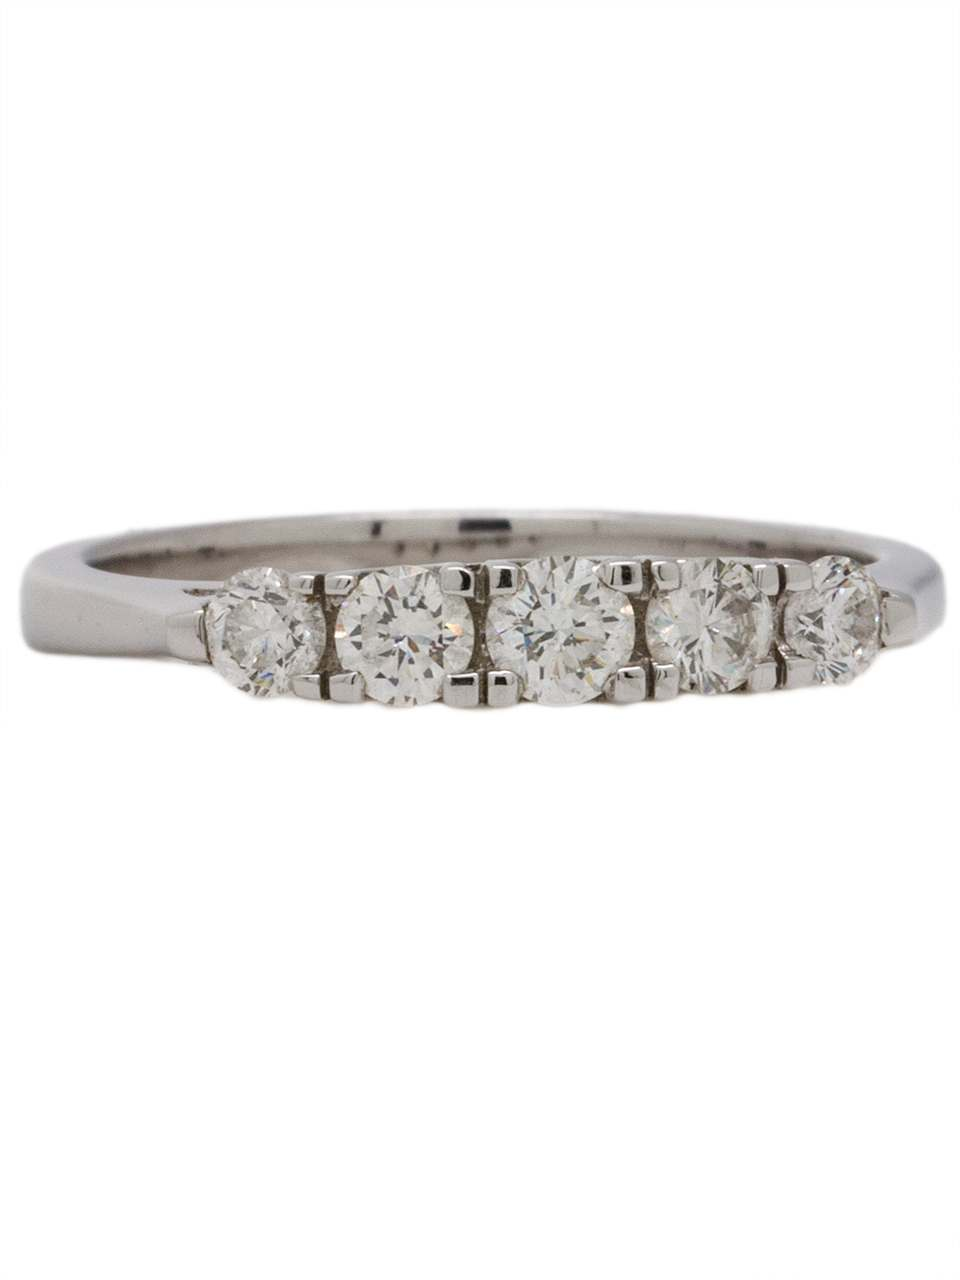 18K White Gold Five Stone Diamond Band 0.50ct circa 2000s